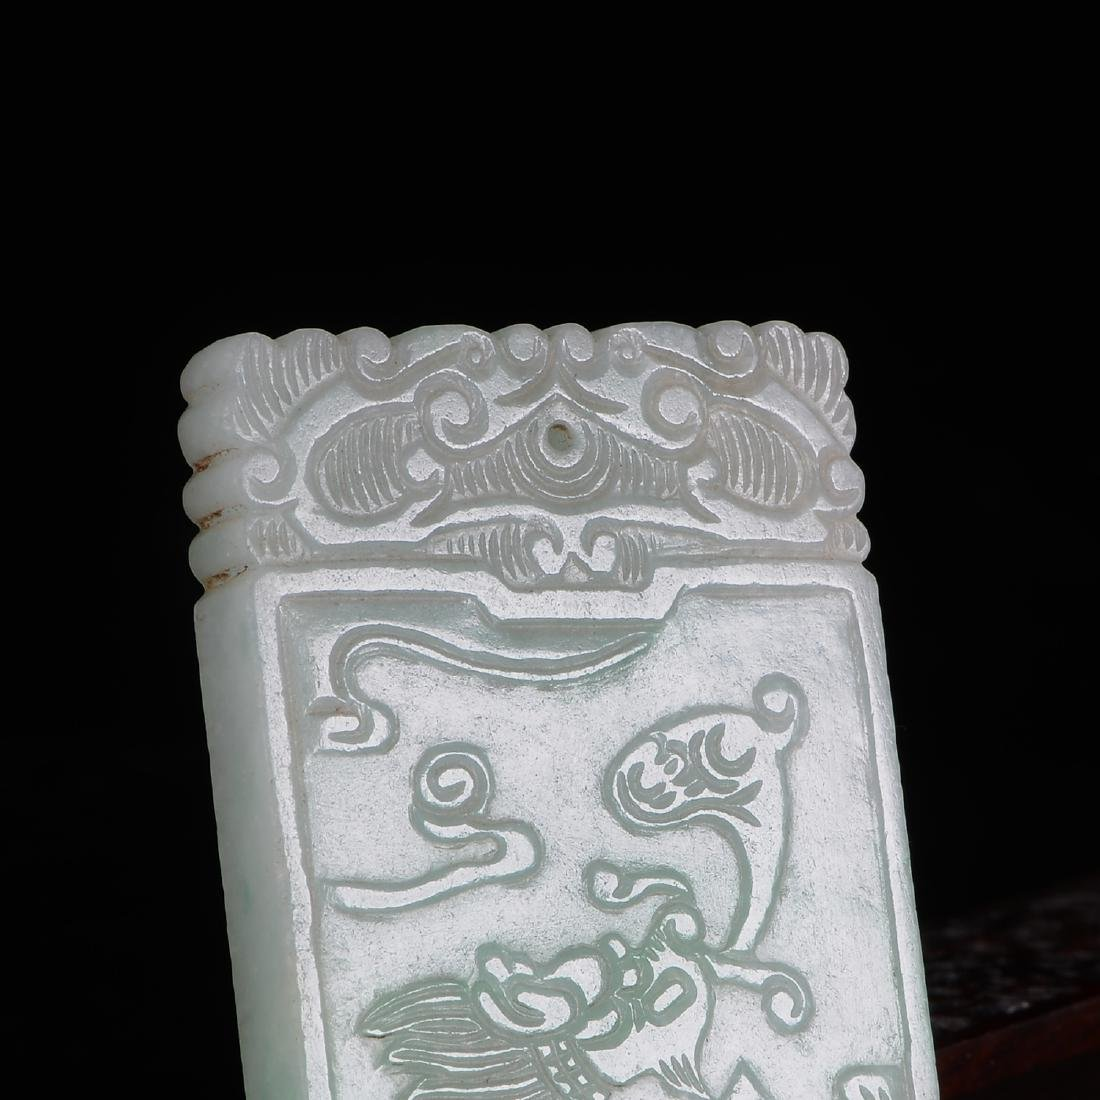 Chinese Qing Dynasty  Jade Pendant - 2